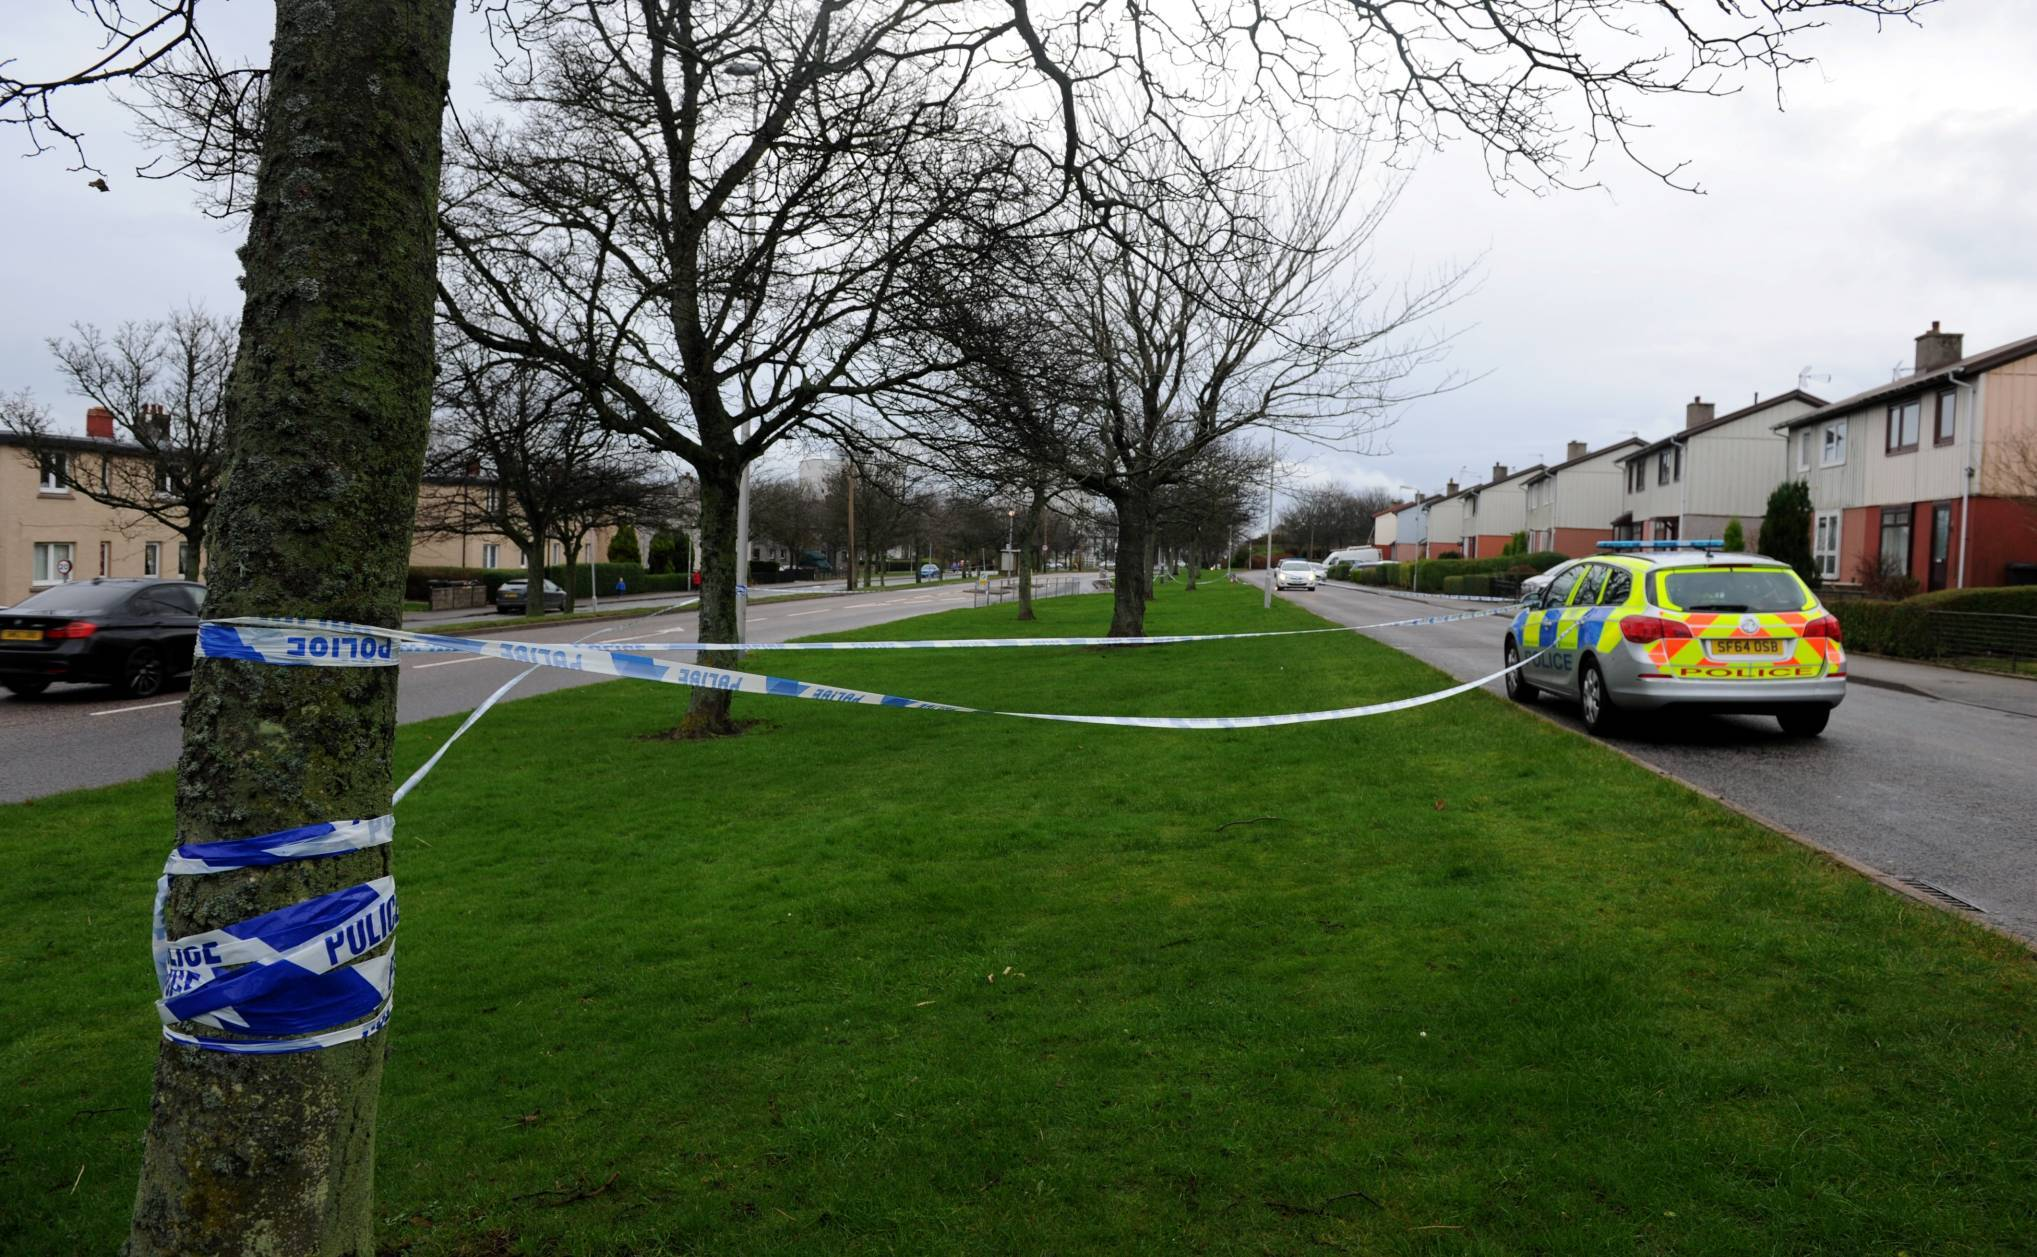 Provost Rust Drive was sealed off early today